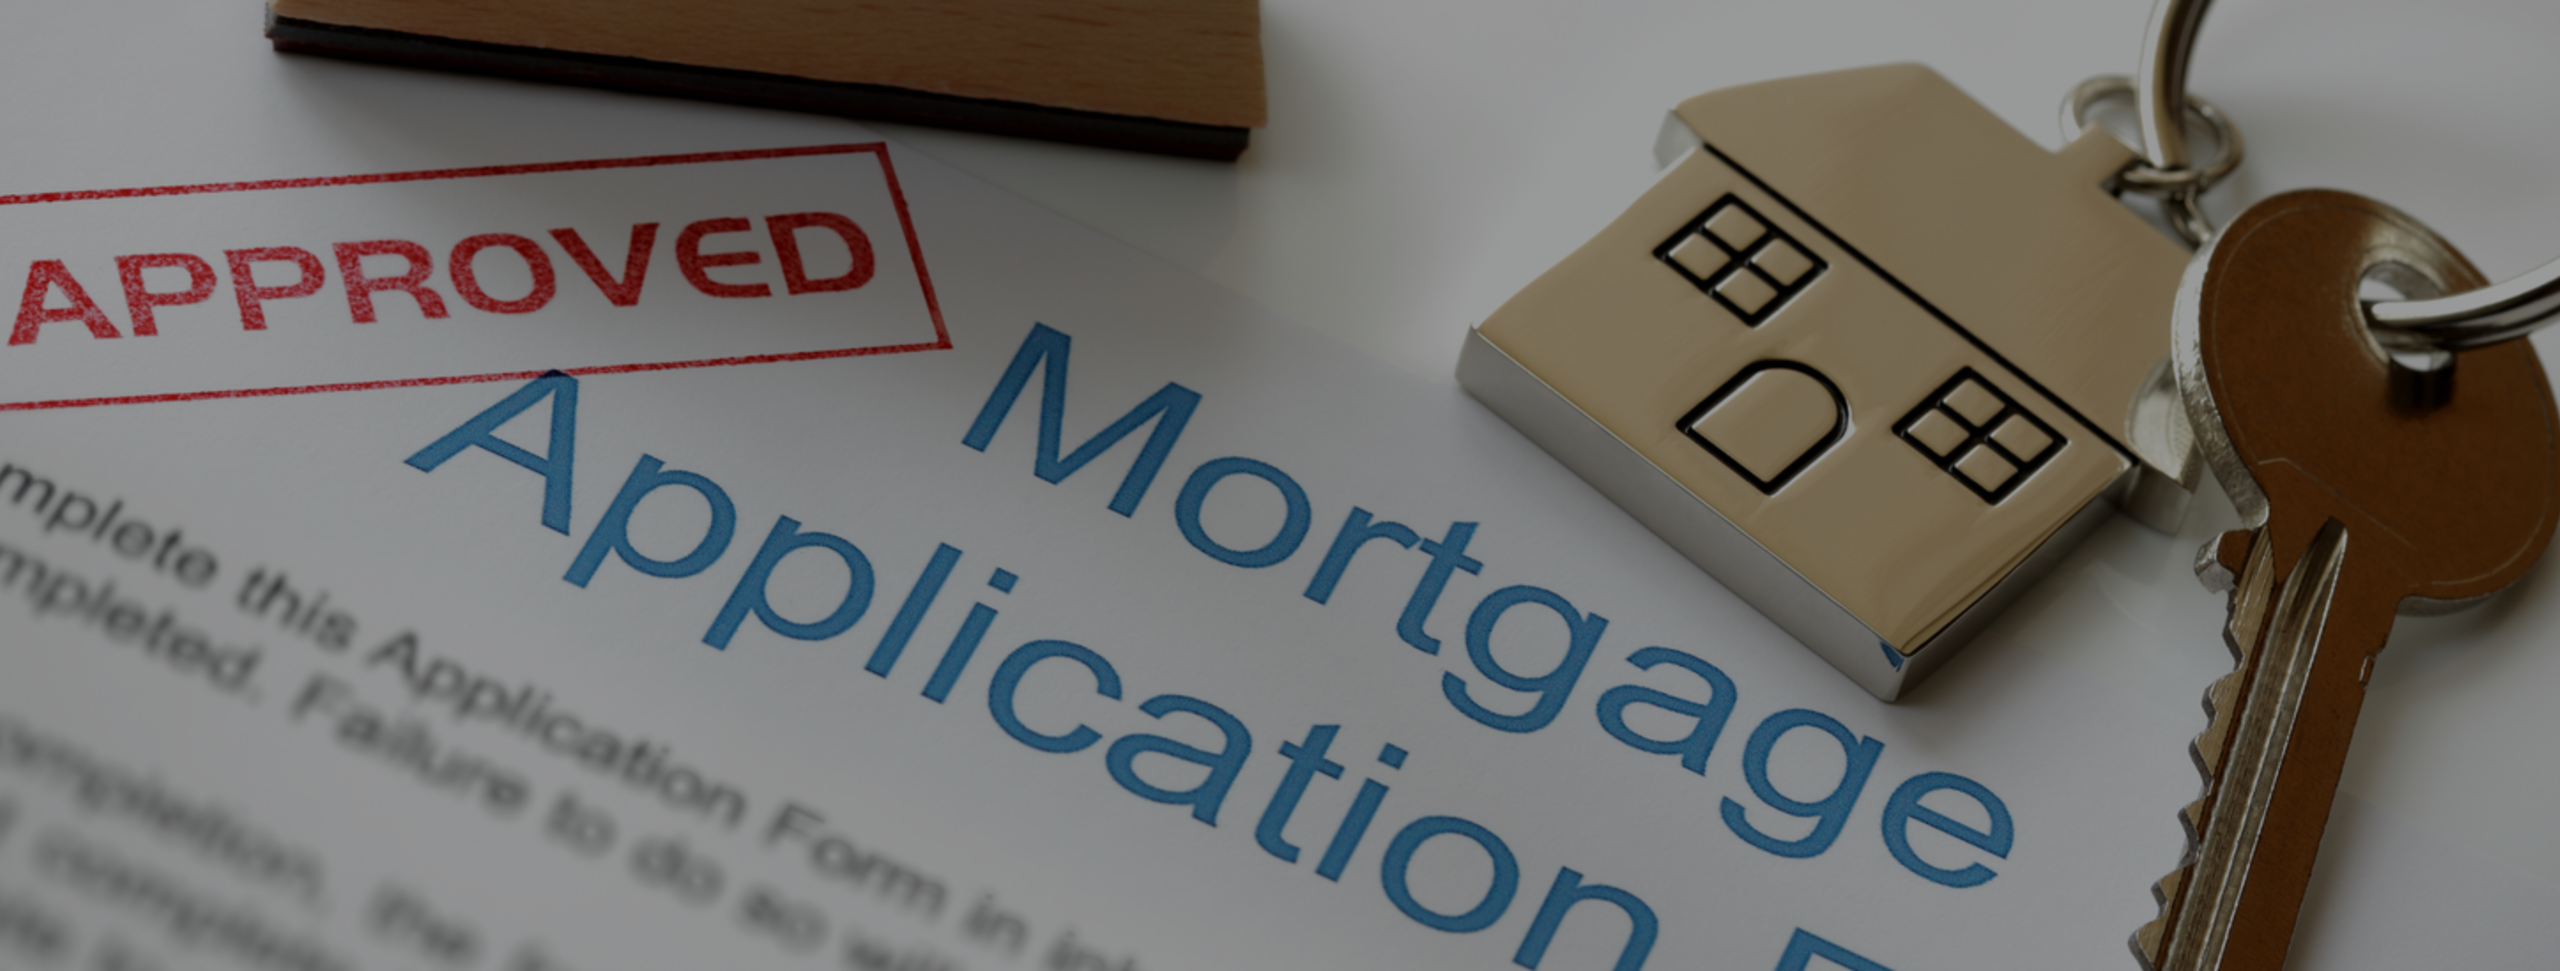 What Documents Will My Mortgage Lender Ask Me To Provide?